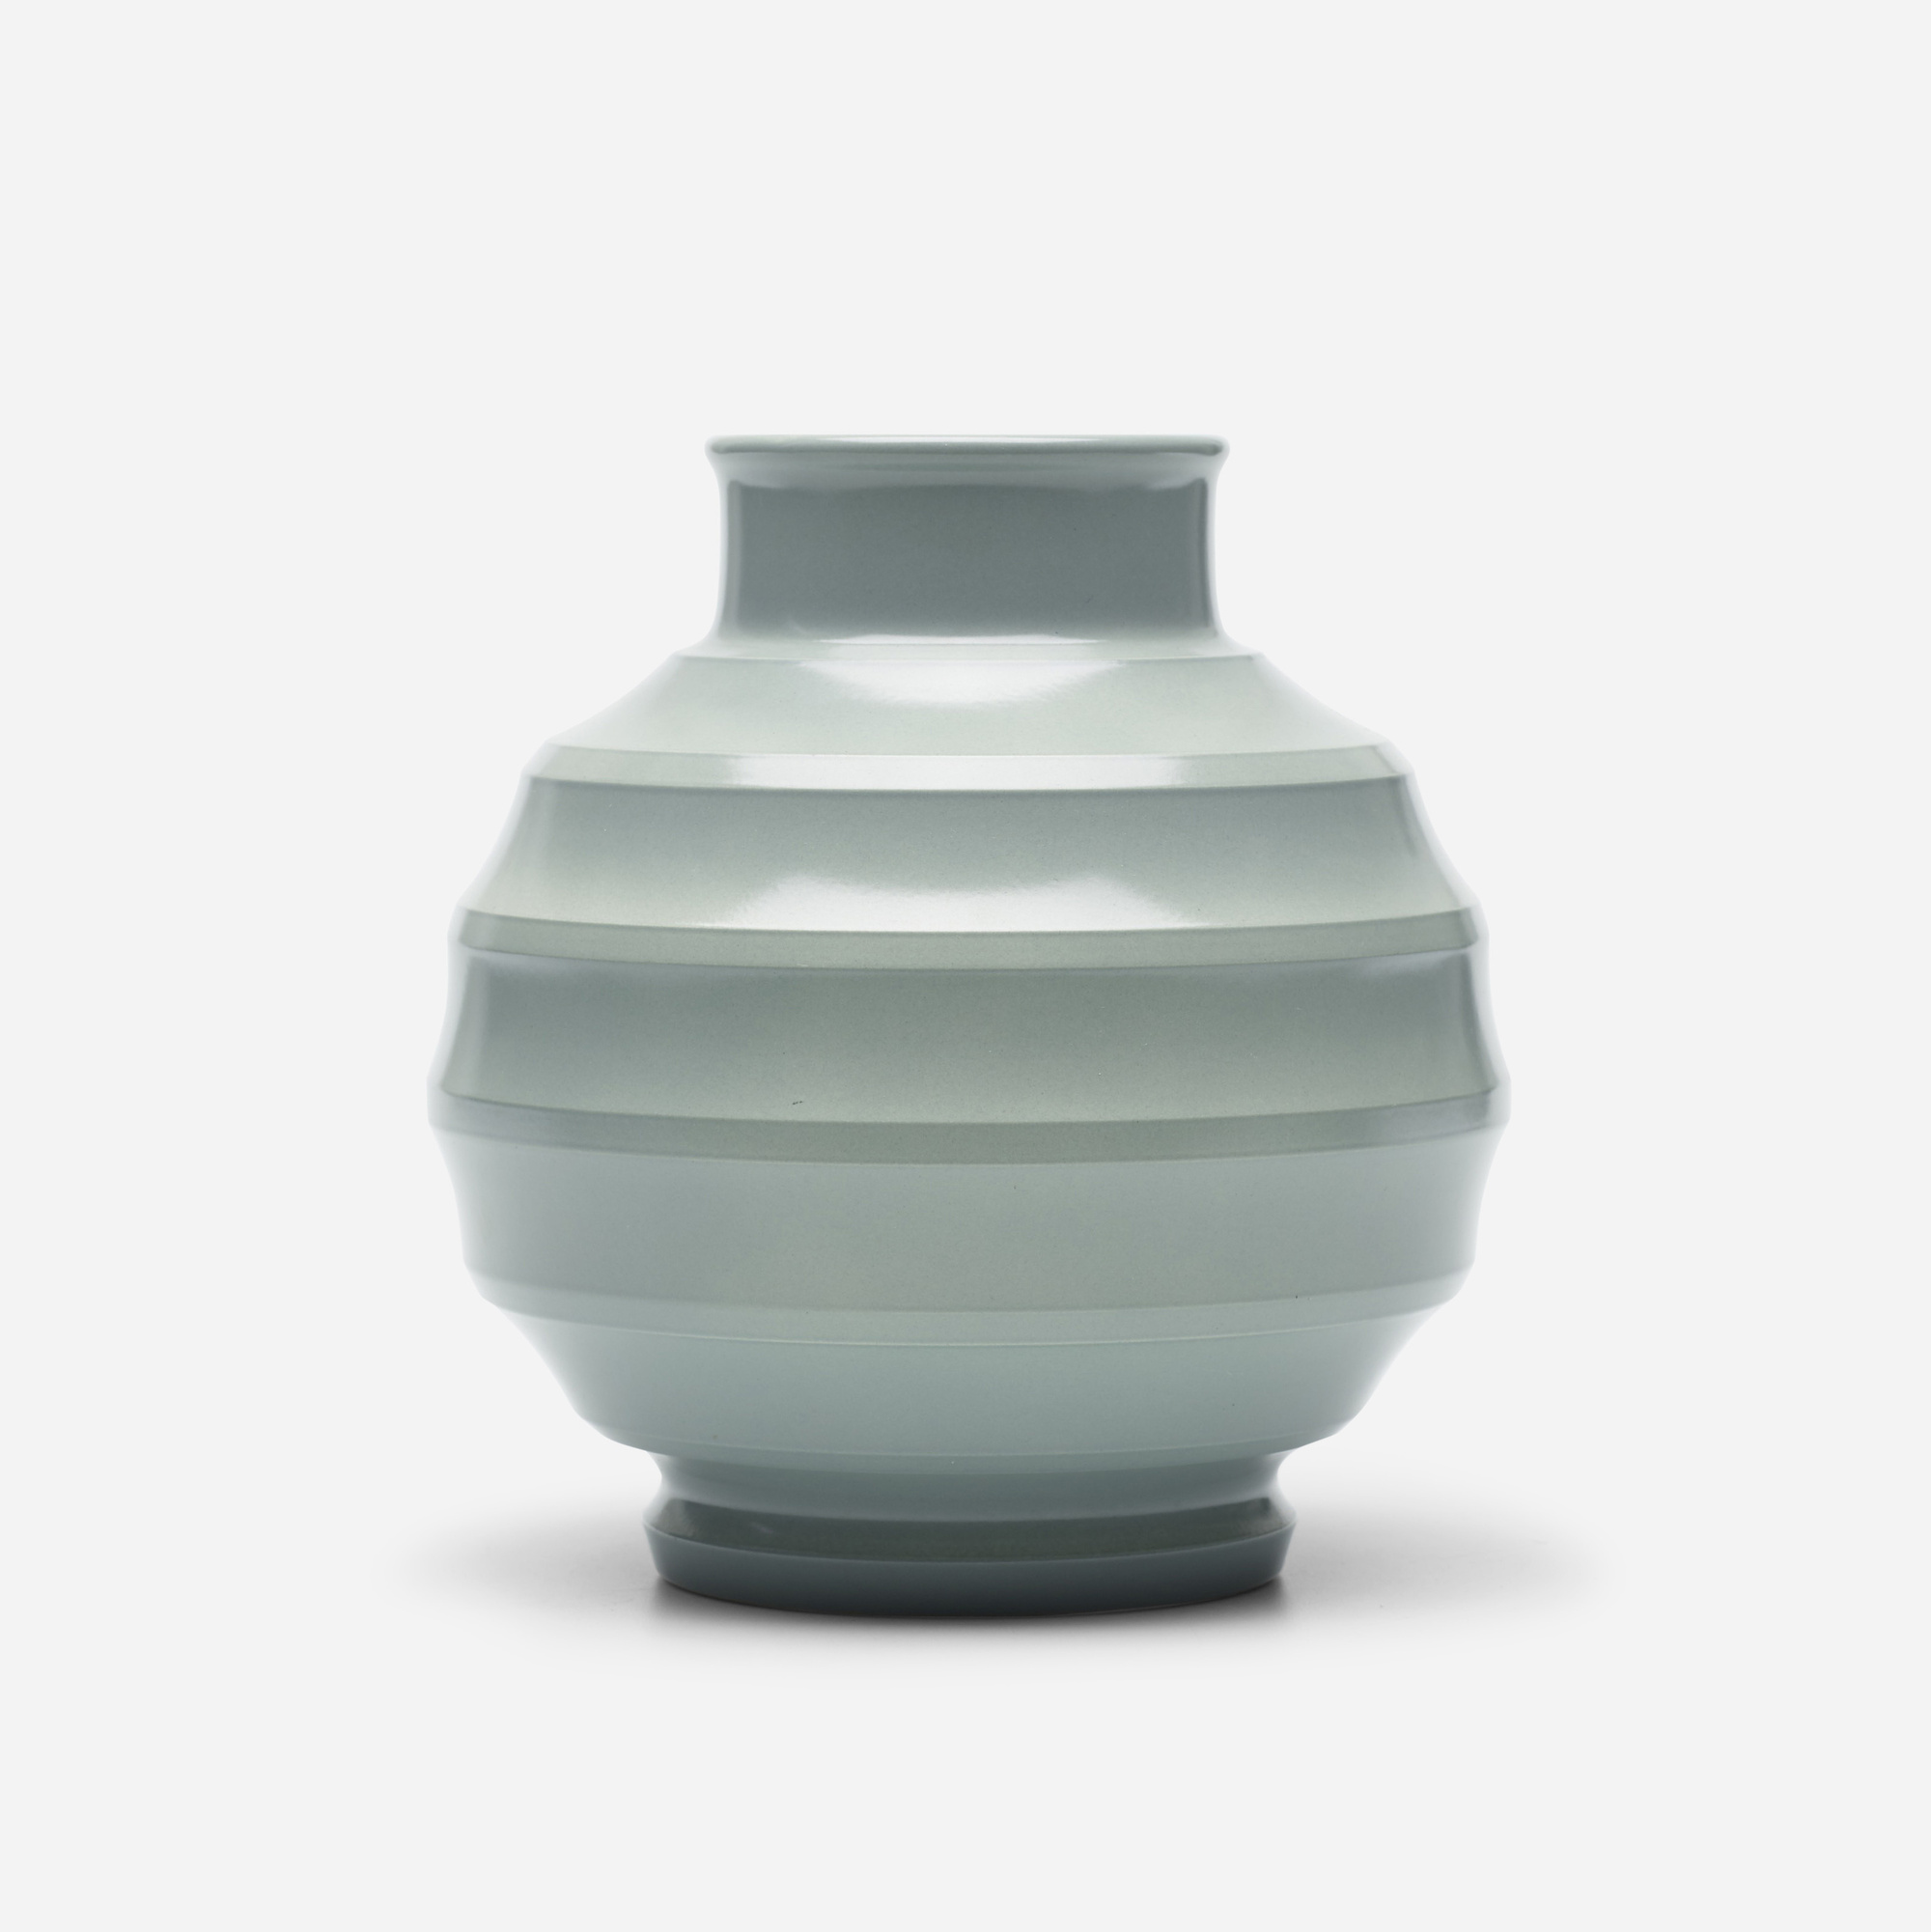 152: Keith Murray / vase (1 of 2)